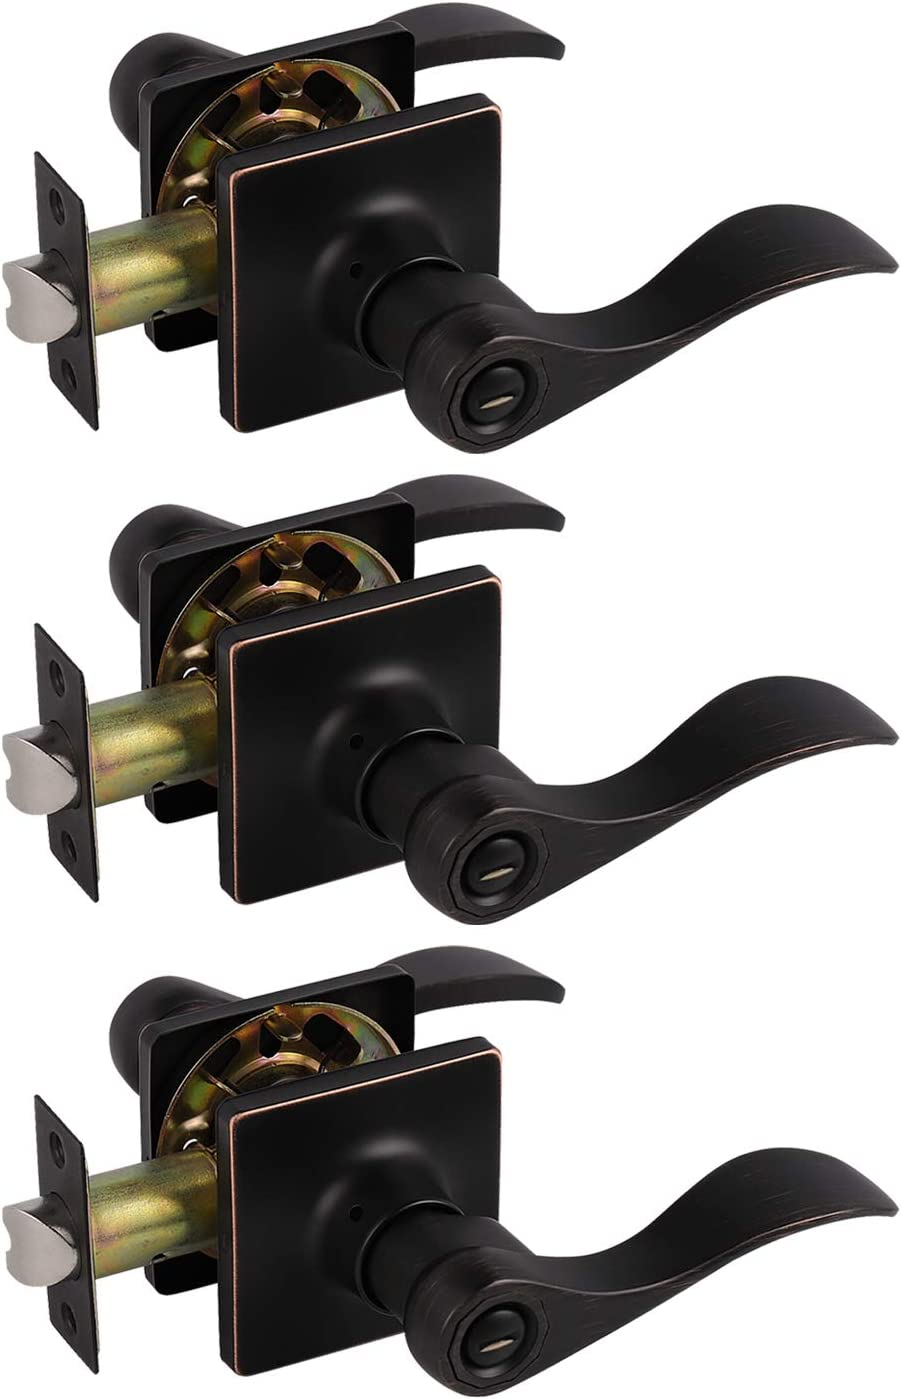 1 Pack Probrico Decorative Inactive Left Handed Lever in Oil Rubbed Bronze Square Rosette Single Dummy Door Handle with a Traditional Wave Design for Interior Hall Closets or Pantry Doors